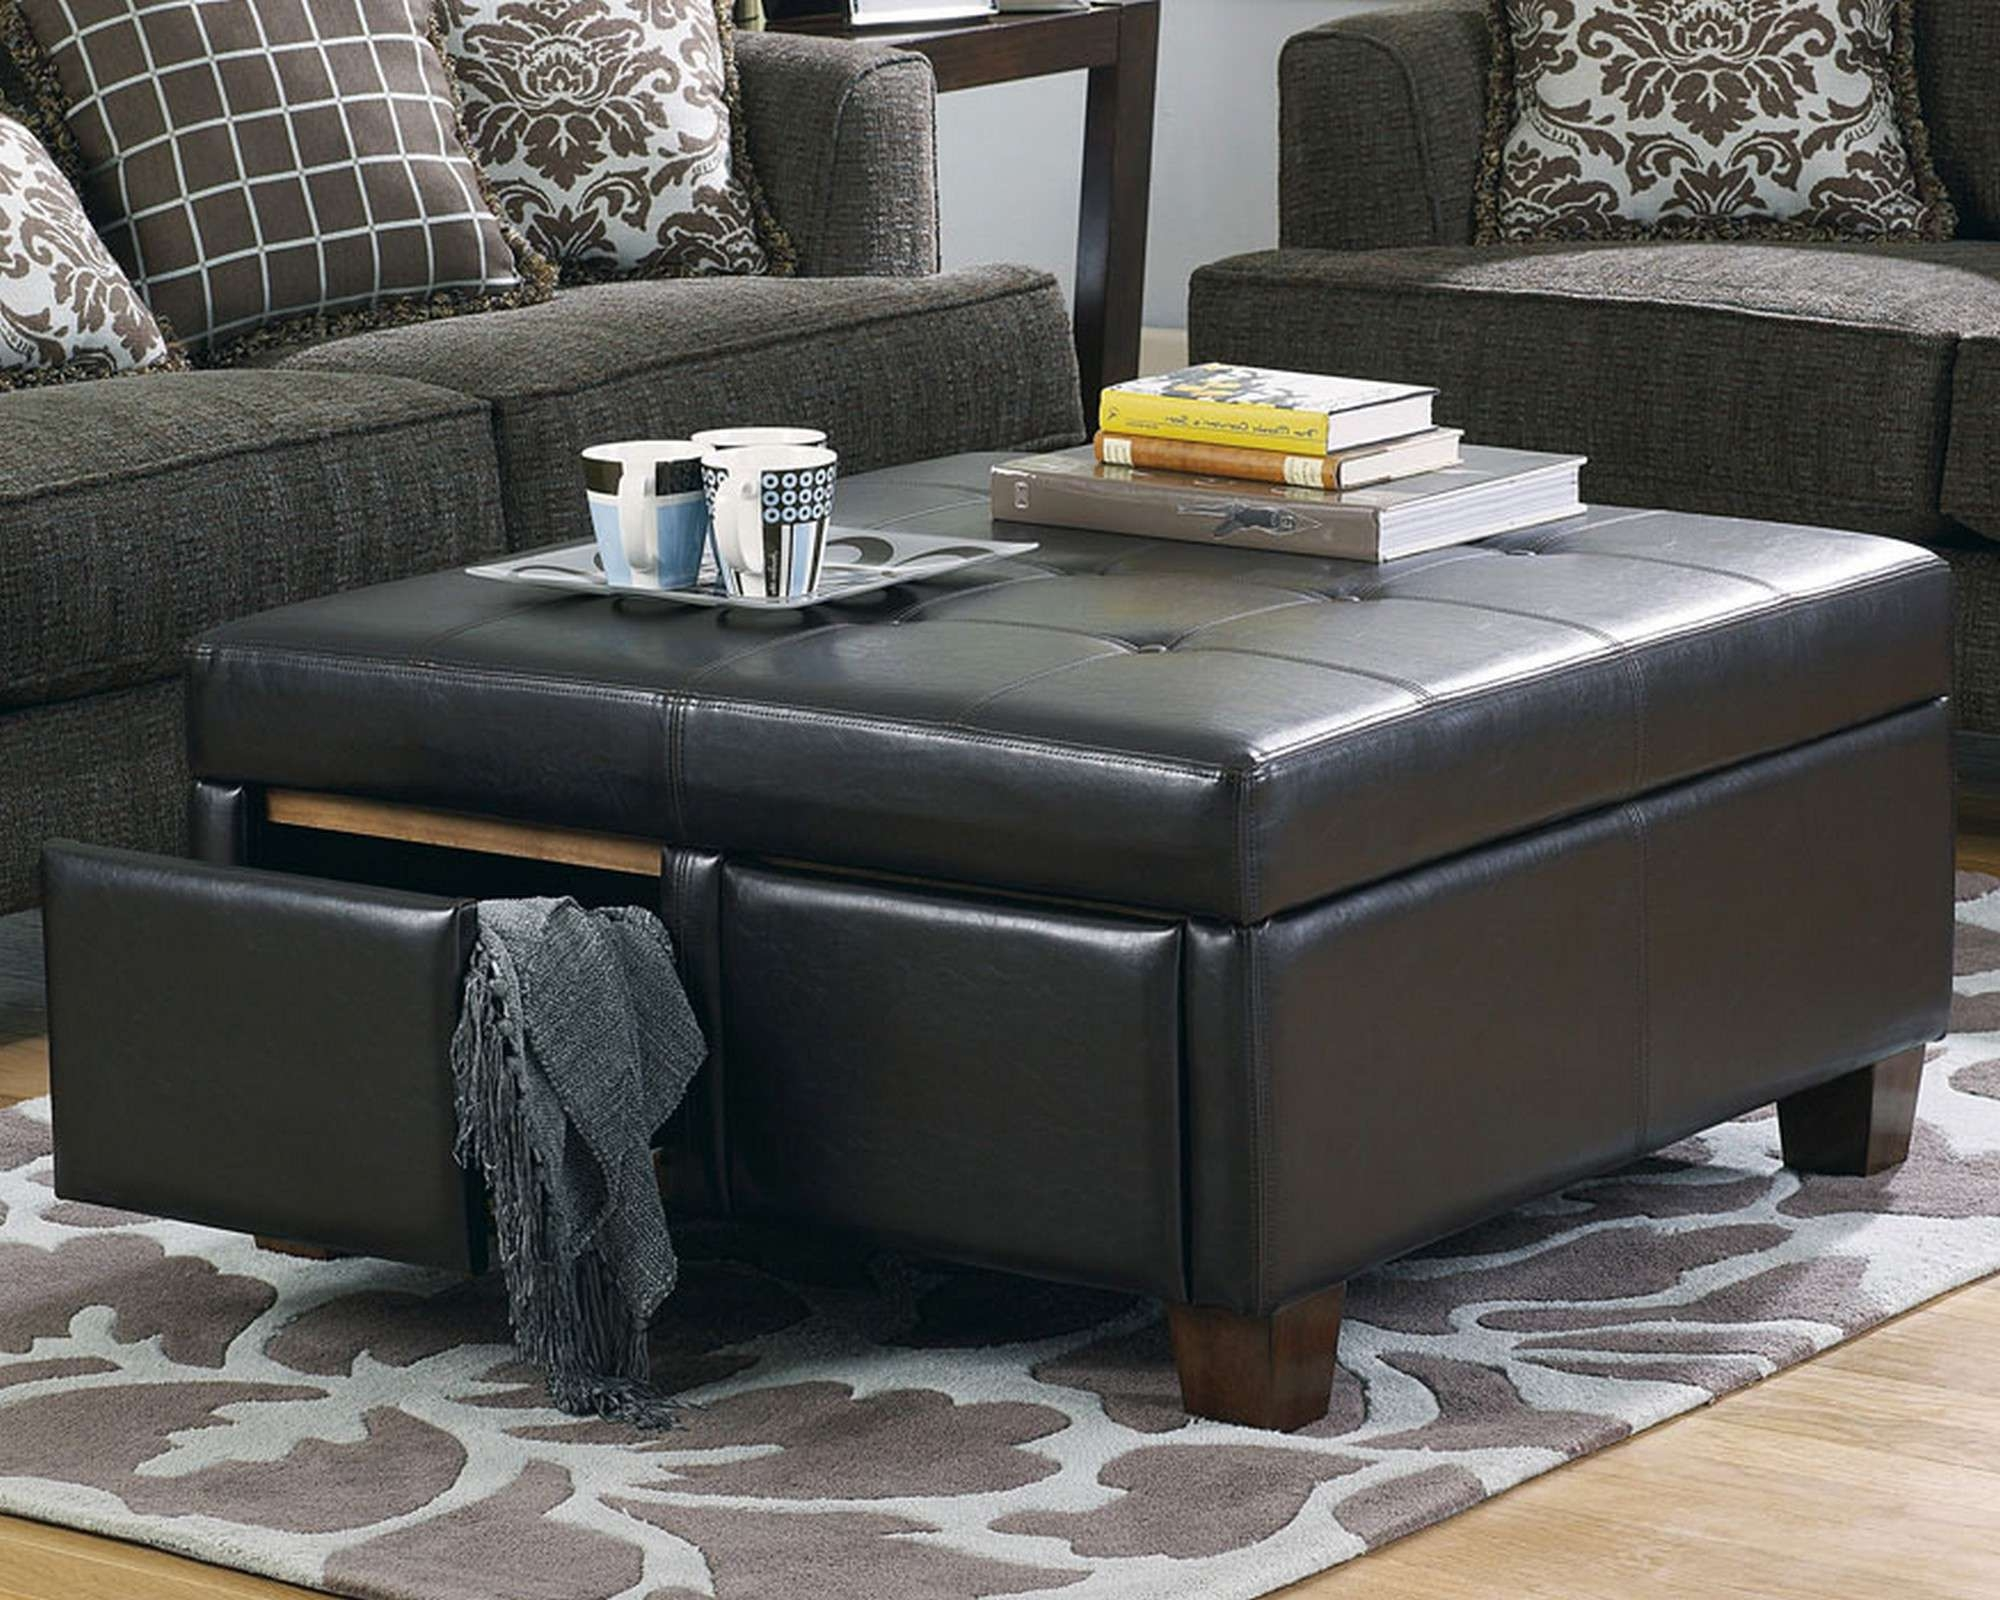 Latest Brown Leather Ottoman Coffee Tables With Storages Pertaining To Coffee Tables : Small Tufted Ottoman Round Storage Coffee Table (View 15 of 20)